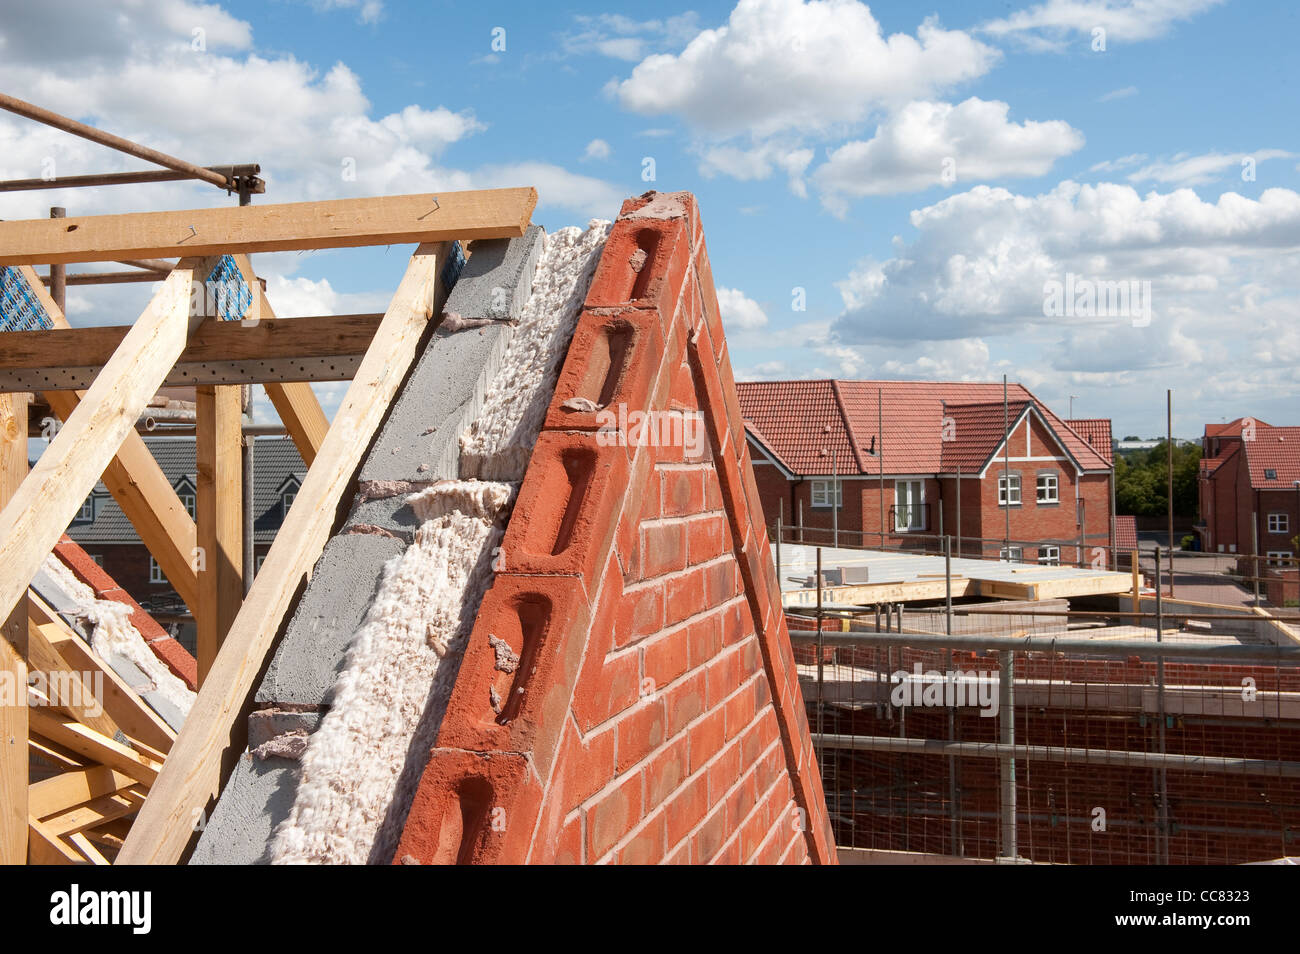 Brand new wooden roof timbers and insulation on a newly built house, England. - Stock Image